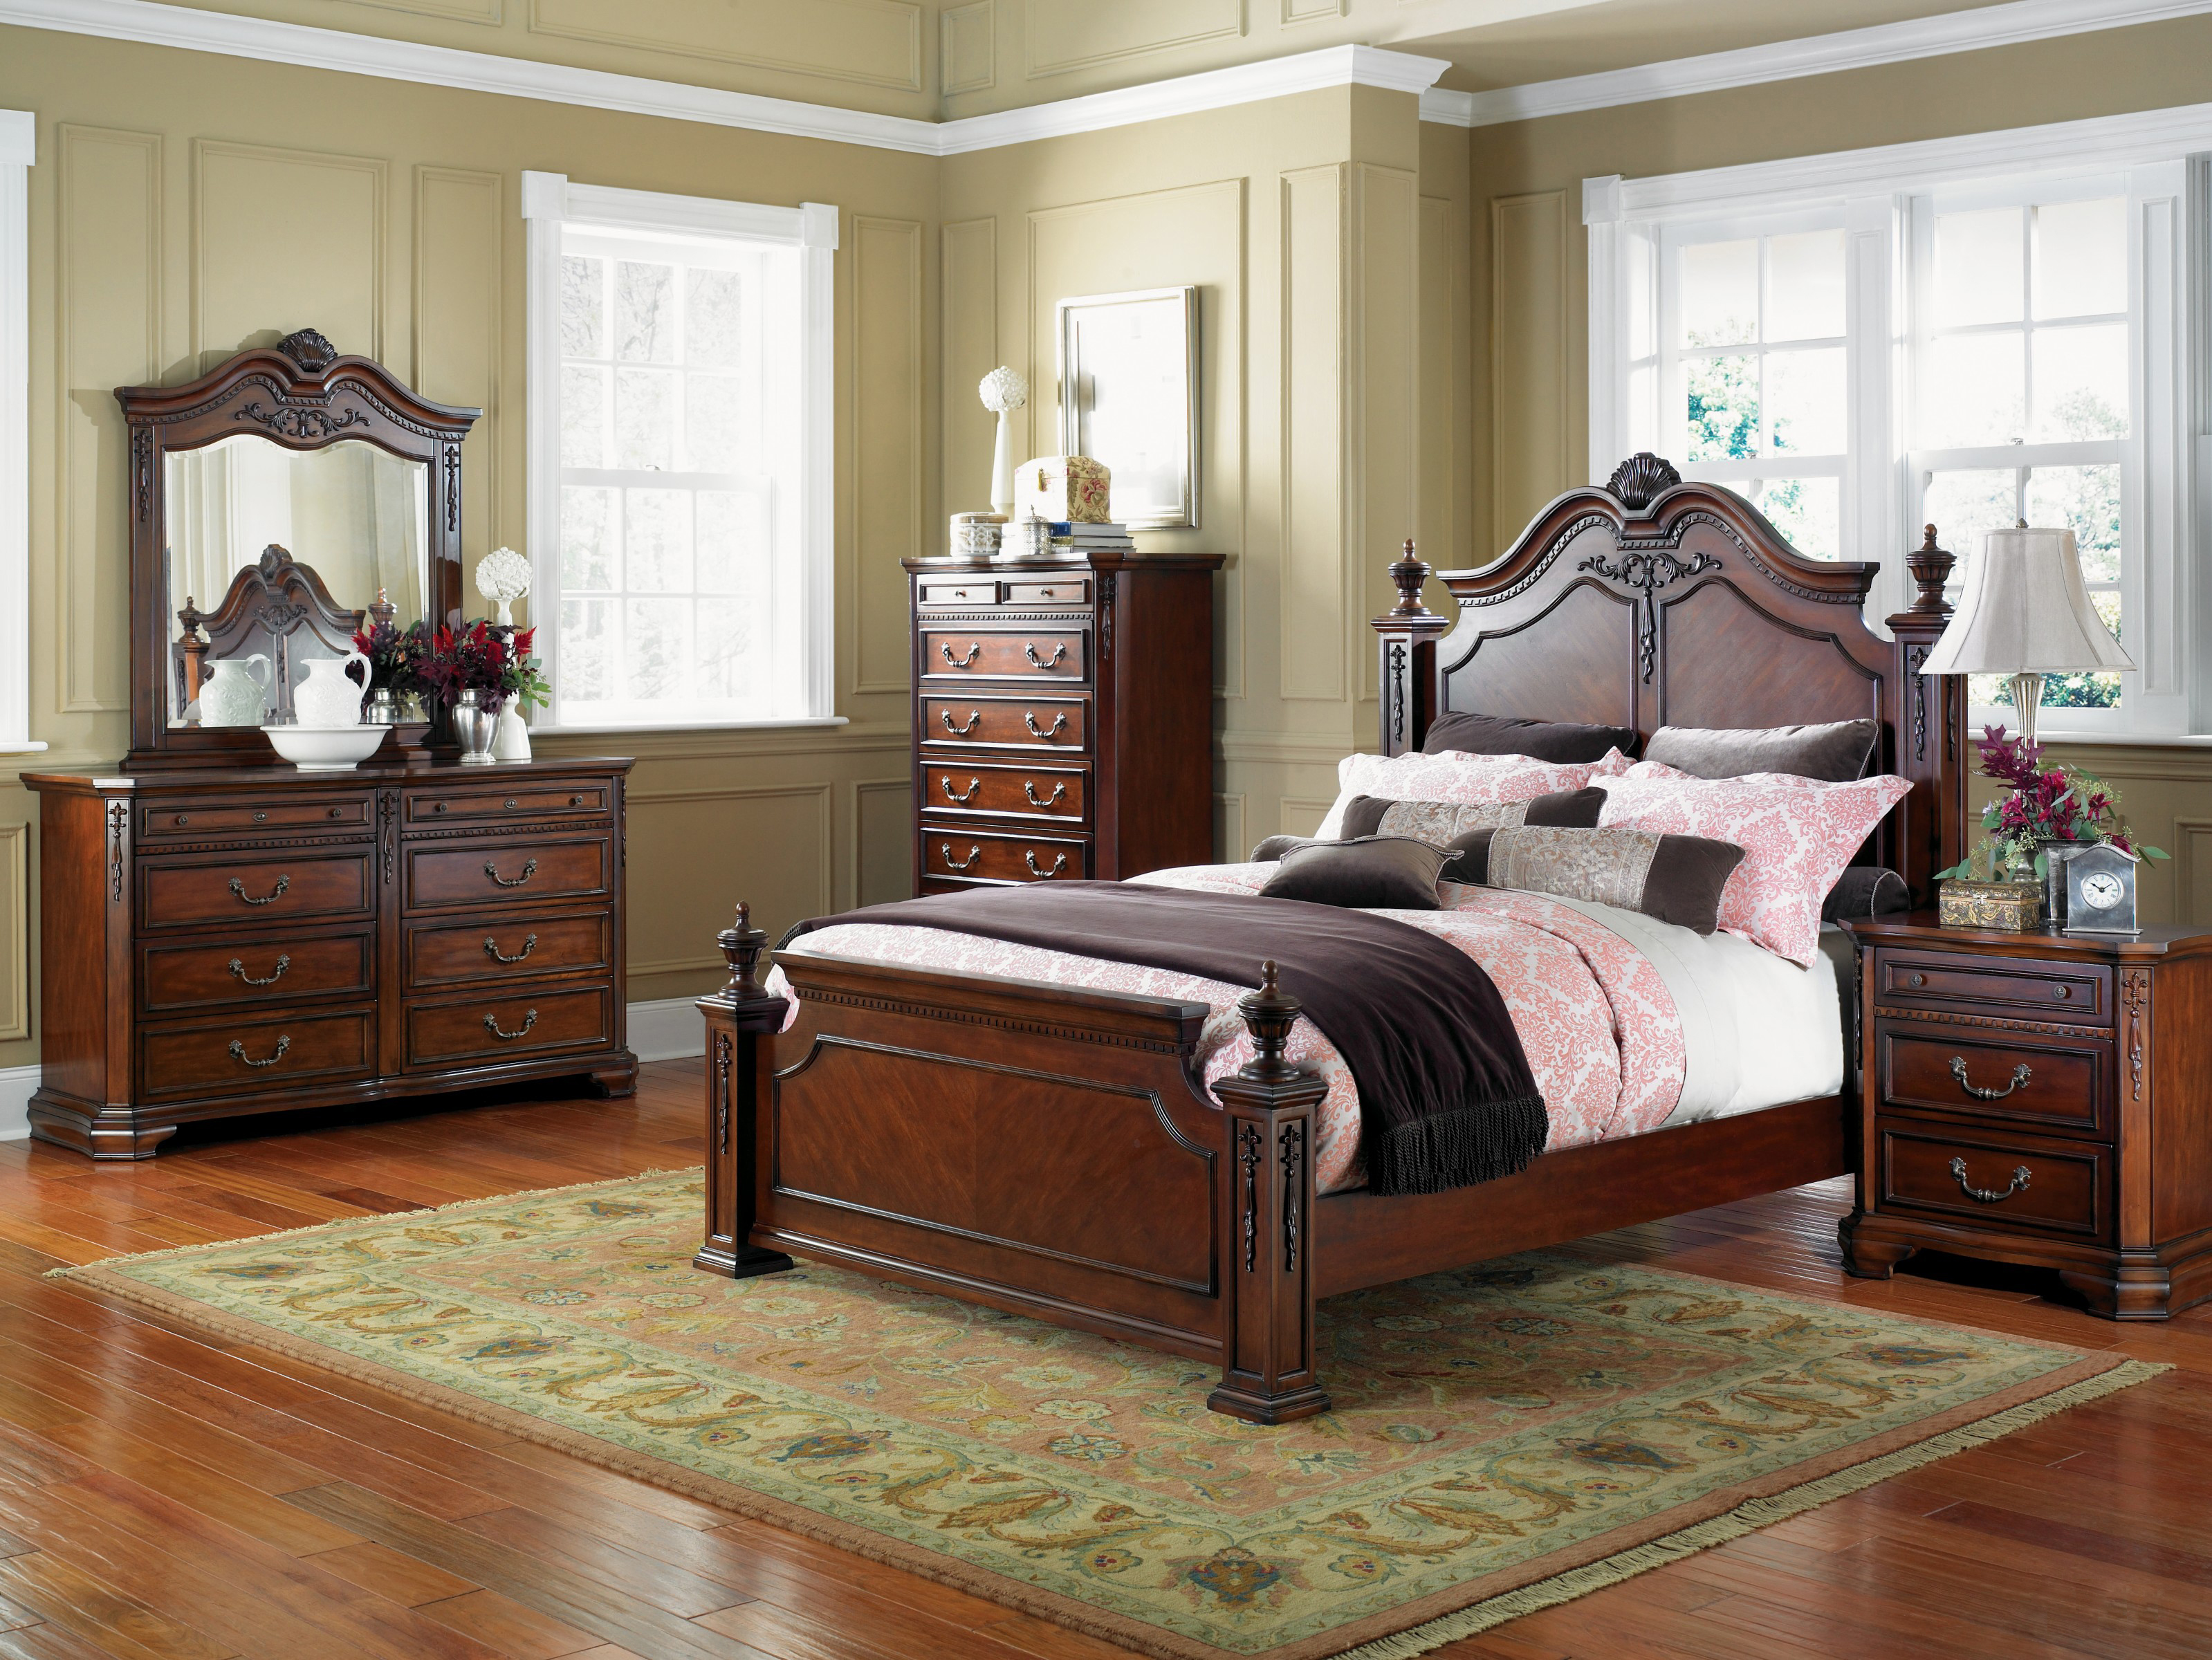 Excelsior bedroom furniture set collection request a free quote